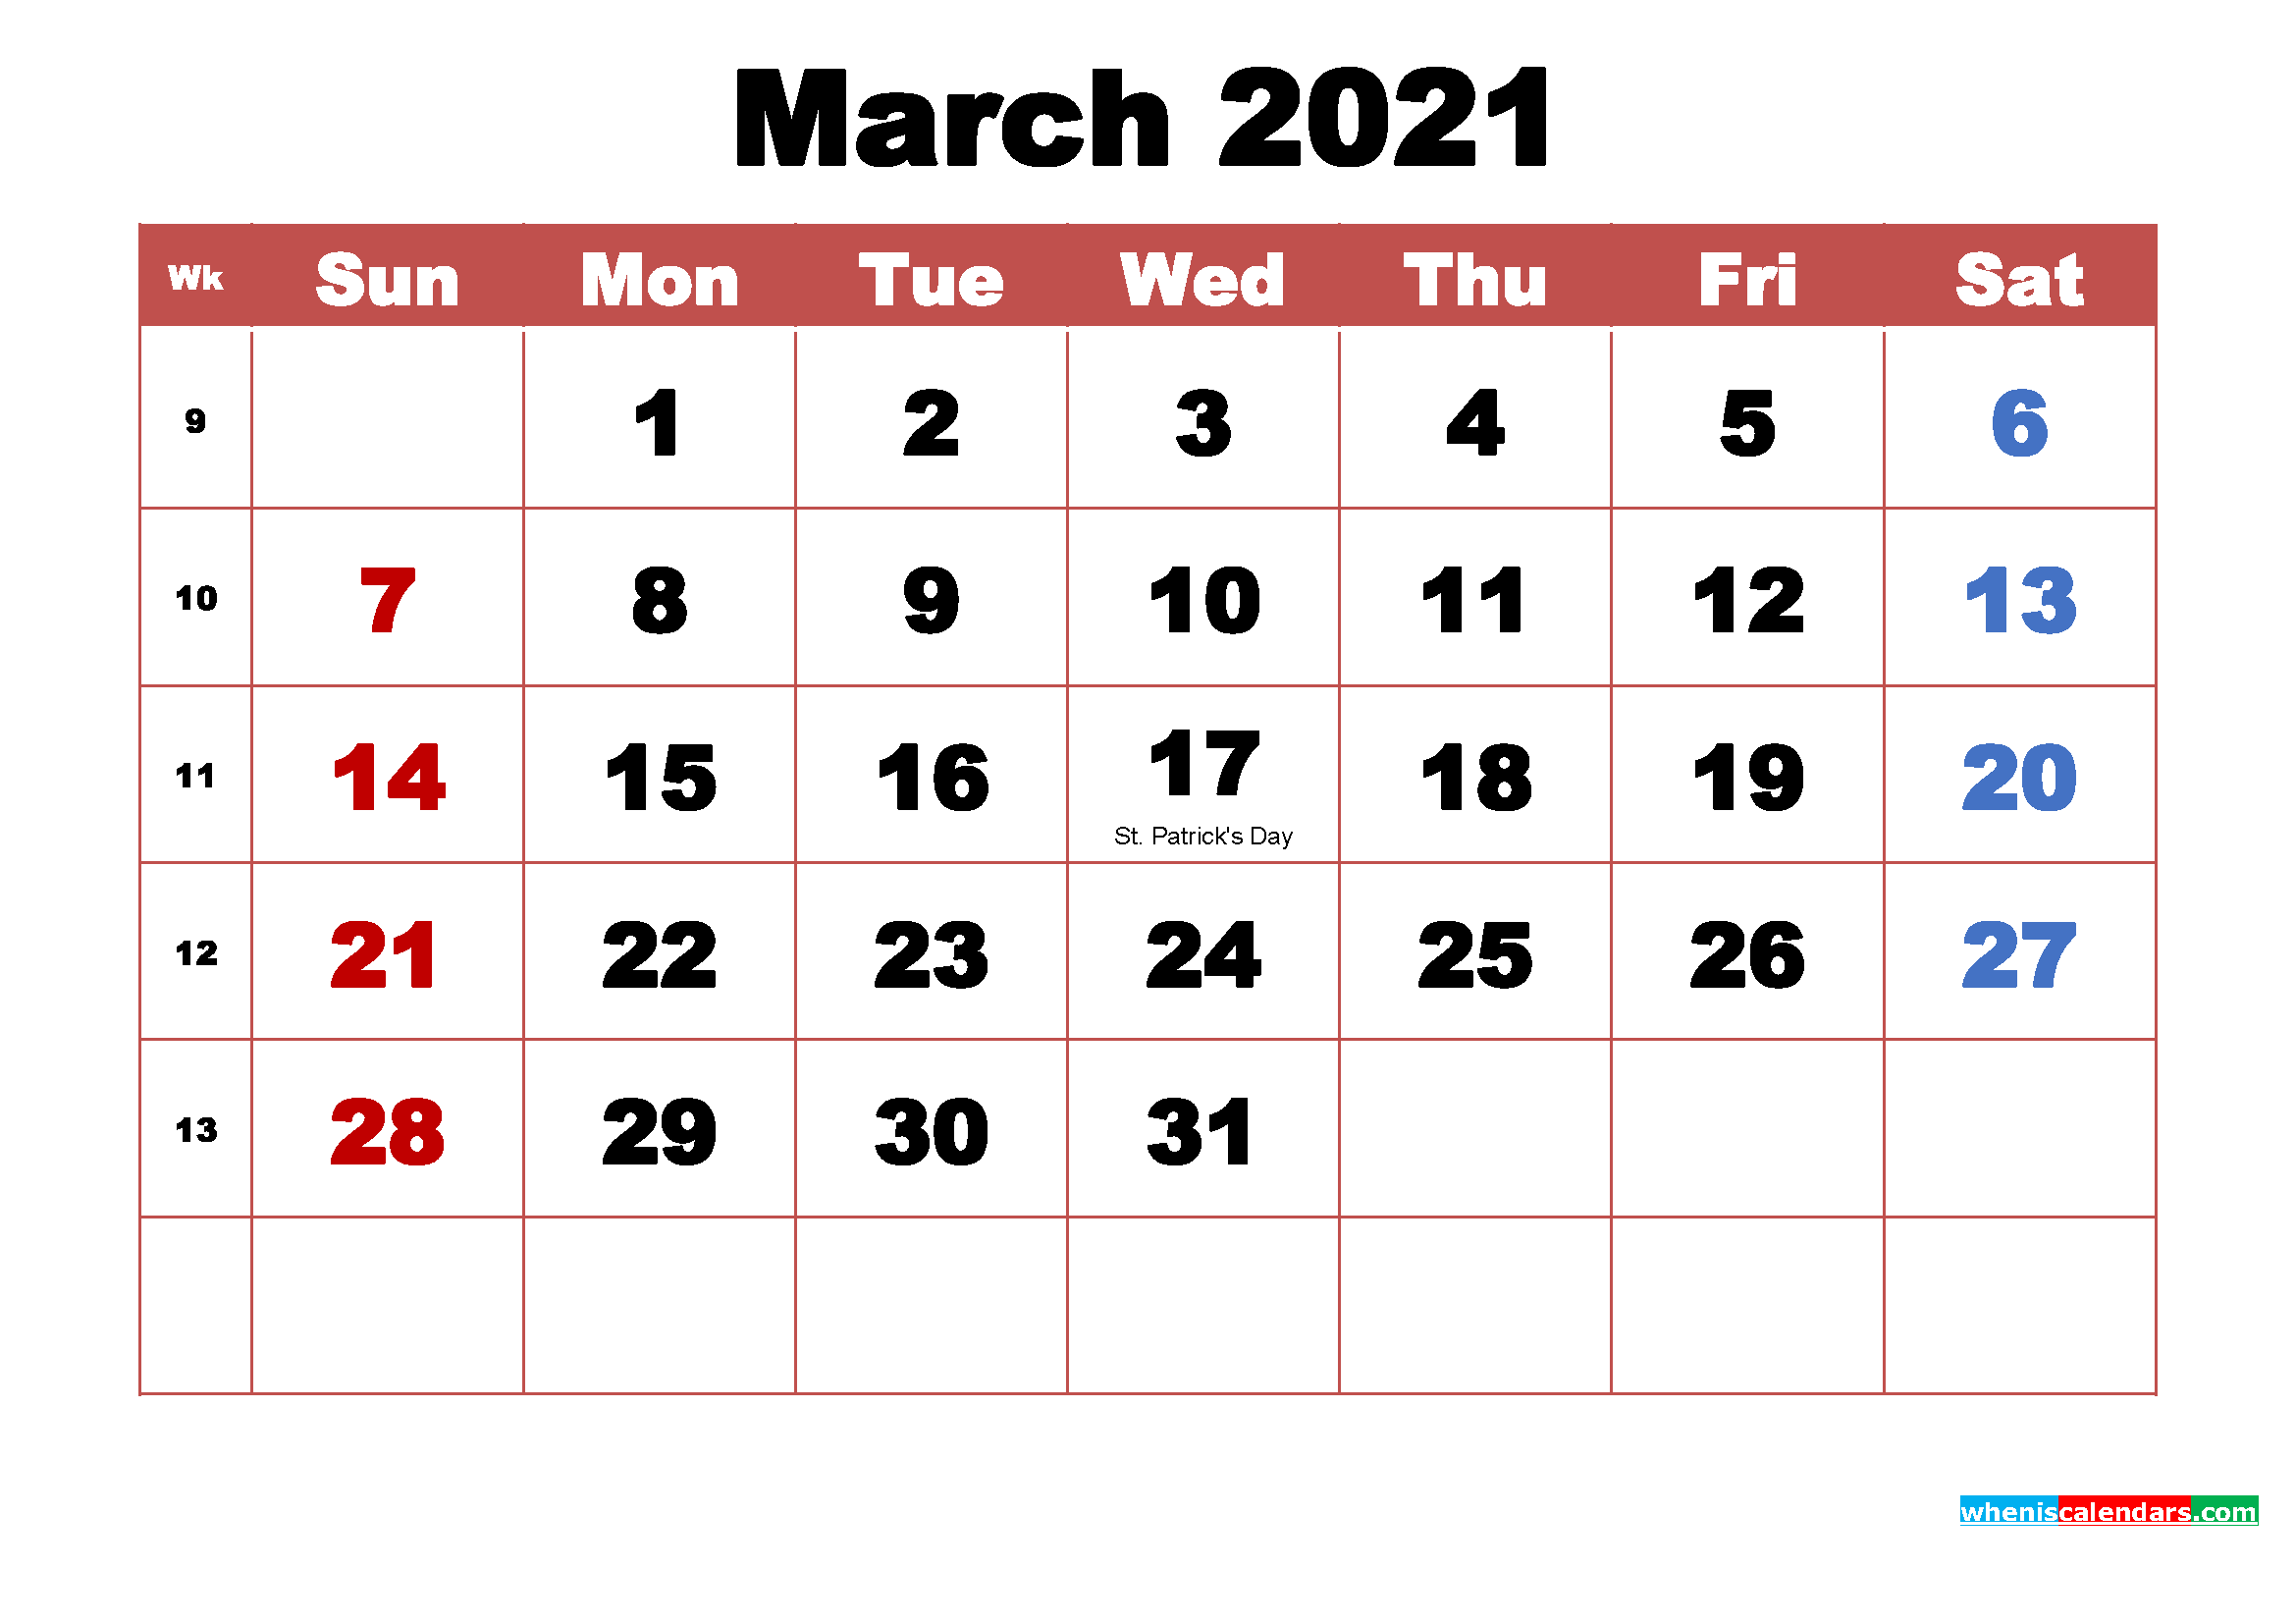 March 2021 Calendar Wallpapers   Top March 2021 Calendar